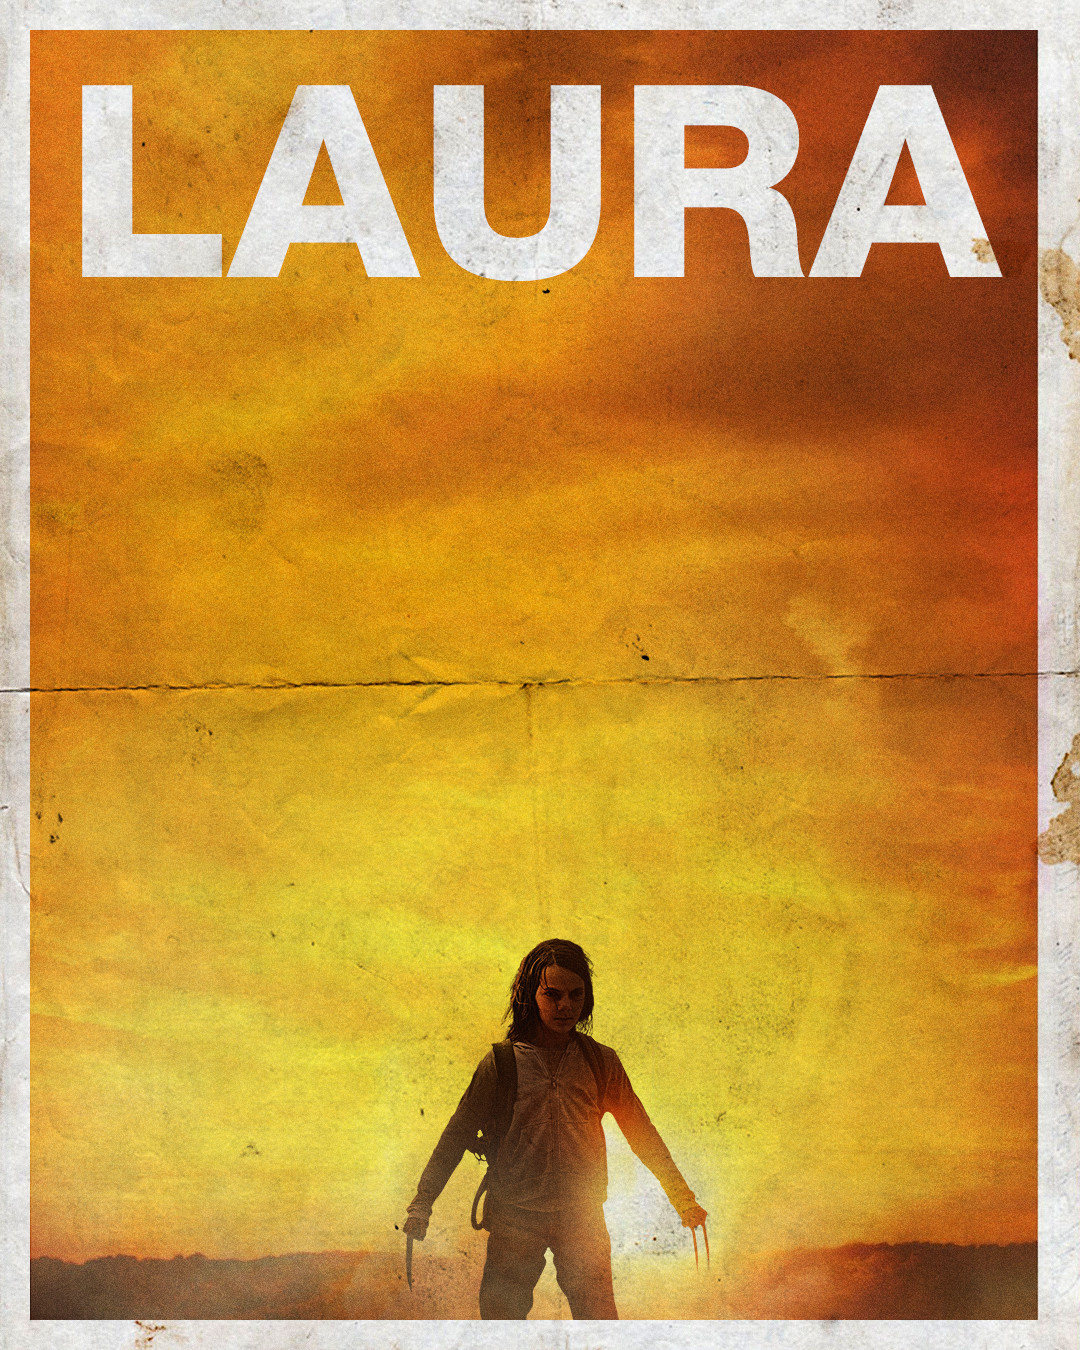 Remade the Logan poster with Laura instead